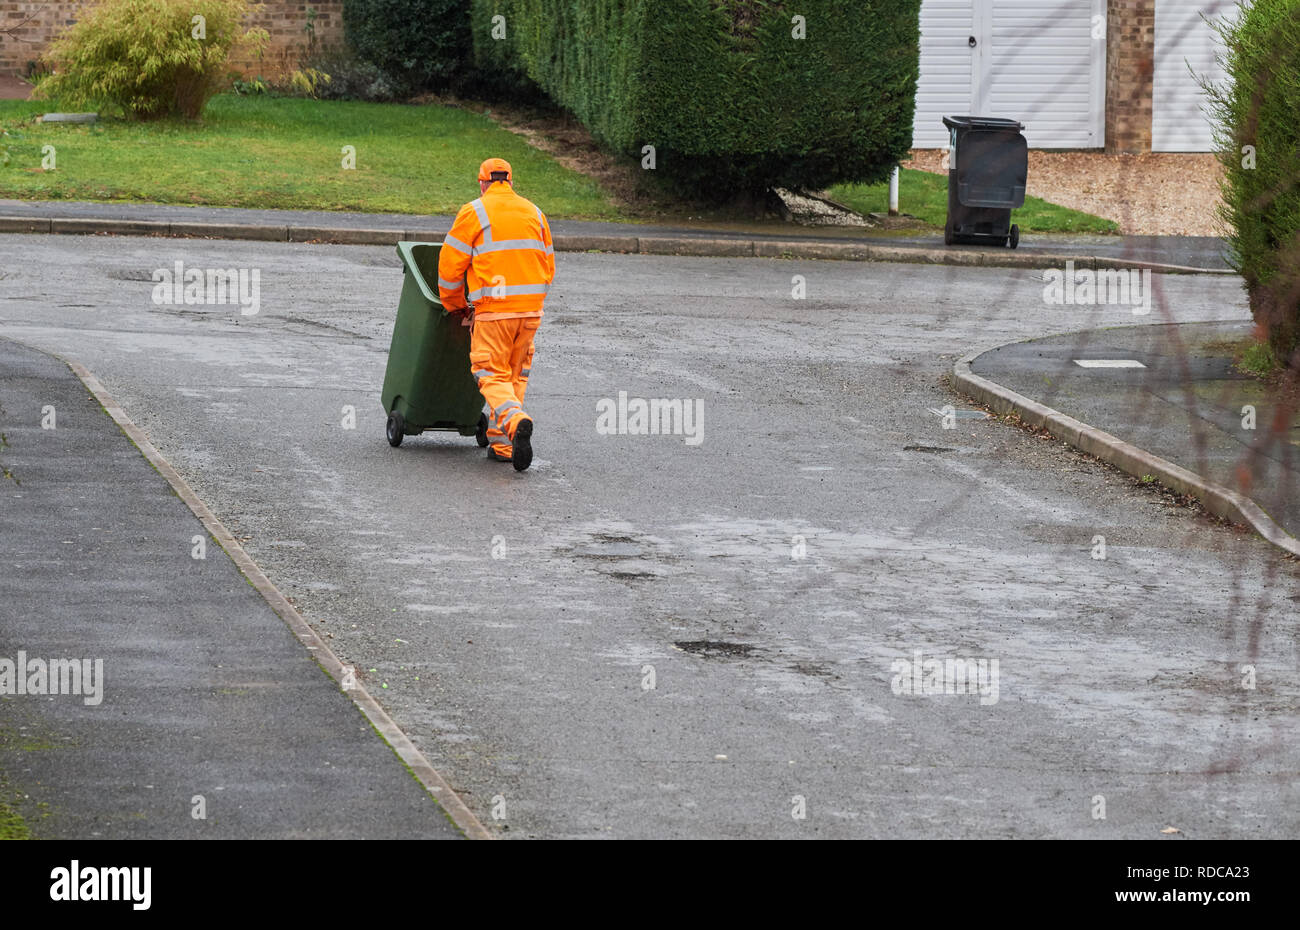 A bin man dressed in an orange fluorescent jacket and trousers pushes a green recycle wheelie bin with recyclable waste down a street on a wet winter  - Stock Image